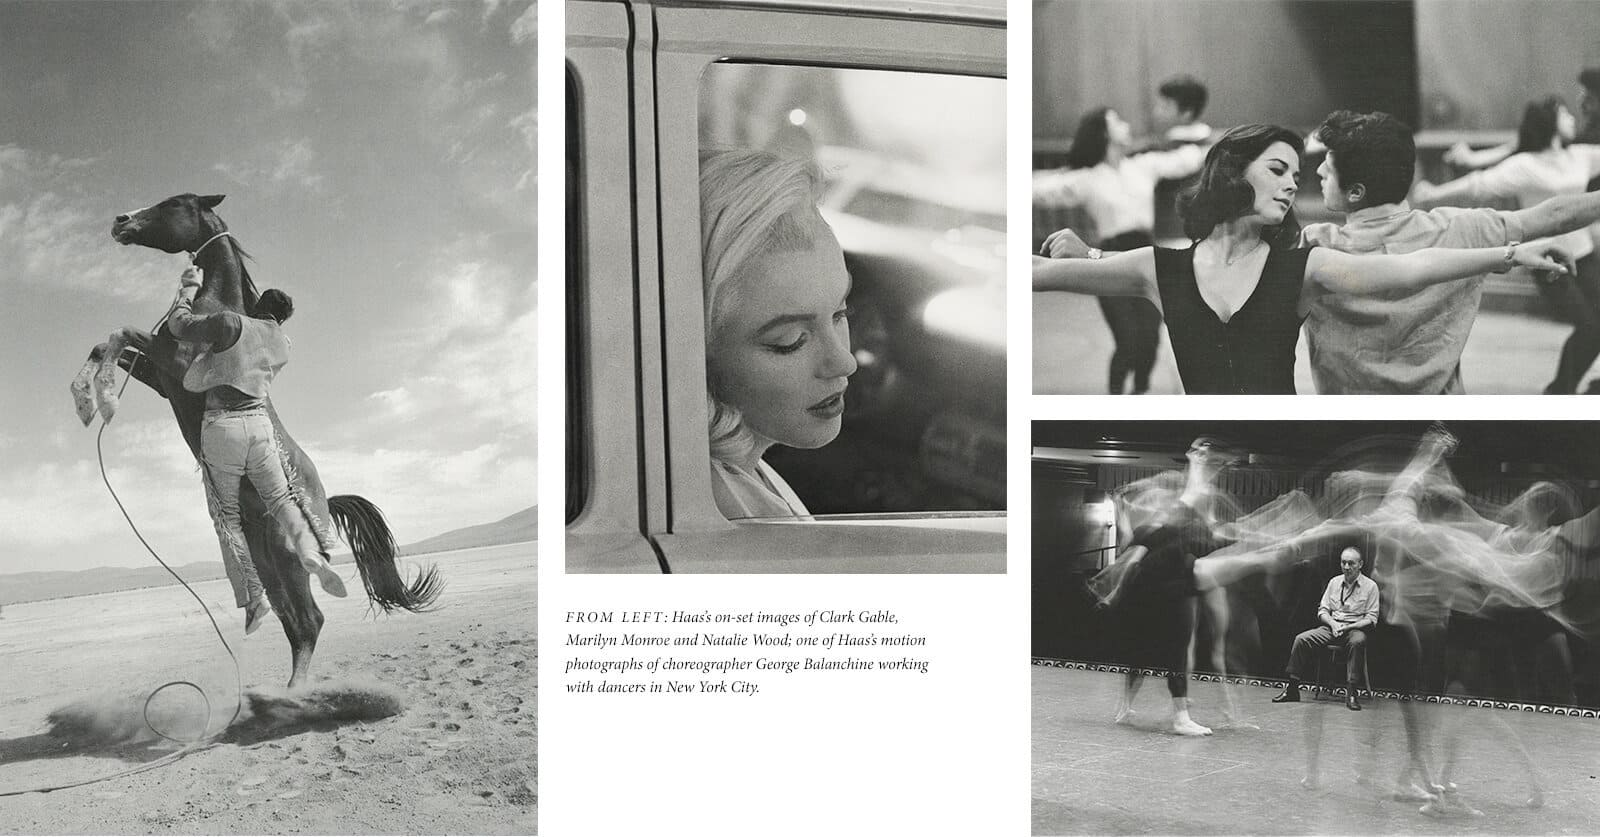 A collage of images includes Ernst Haas's black-and-white film stills of Clark Gable riding a horse jumping in the air, Marilyn Monroe sitting in car, dancers in West Side Story; and a black-and-white photograph of choreographer George Balanchine surrounded by blurry dancers.